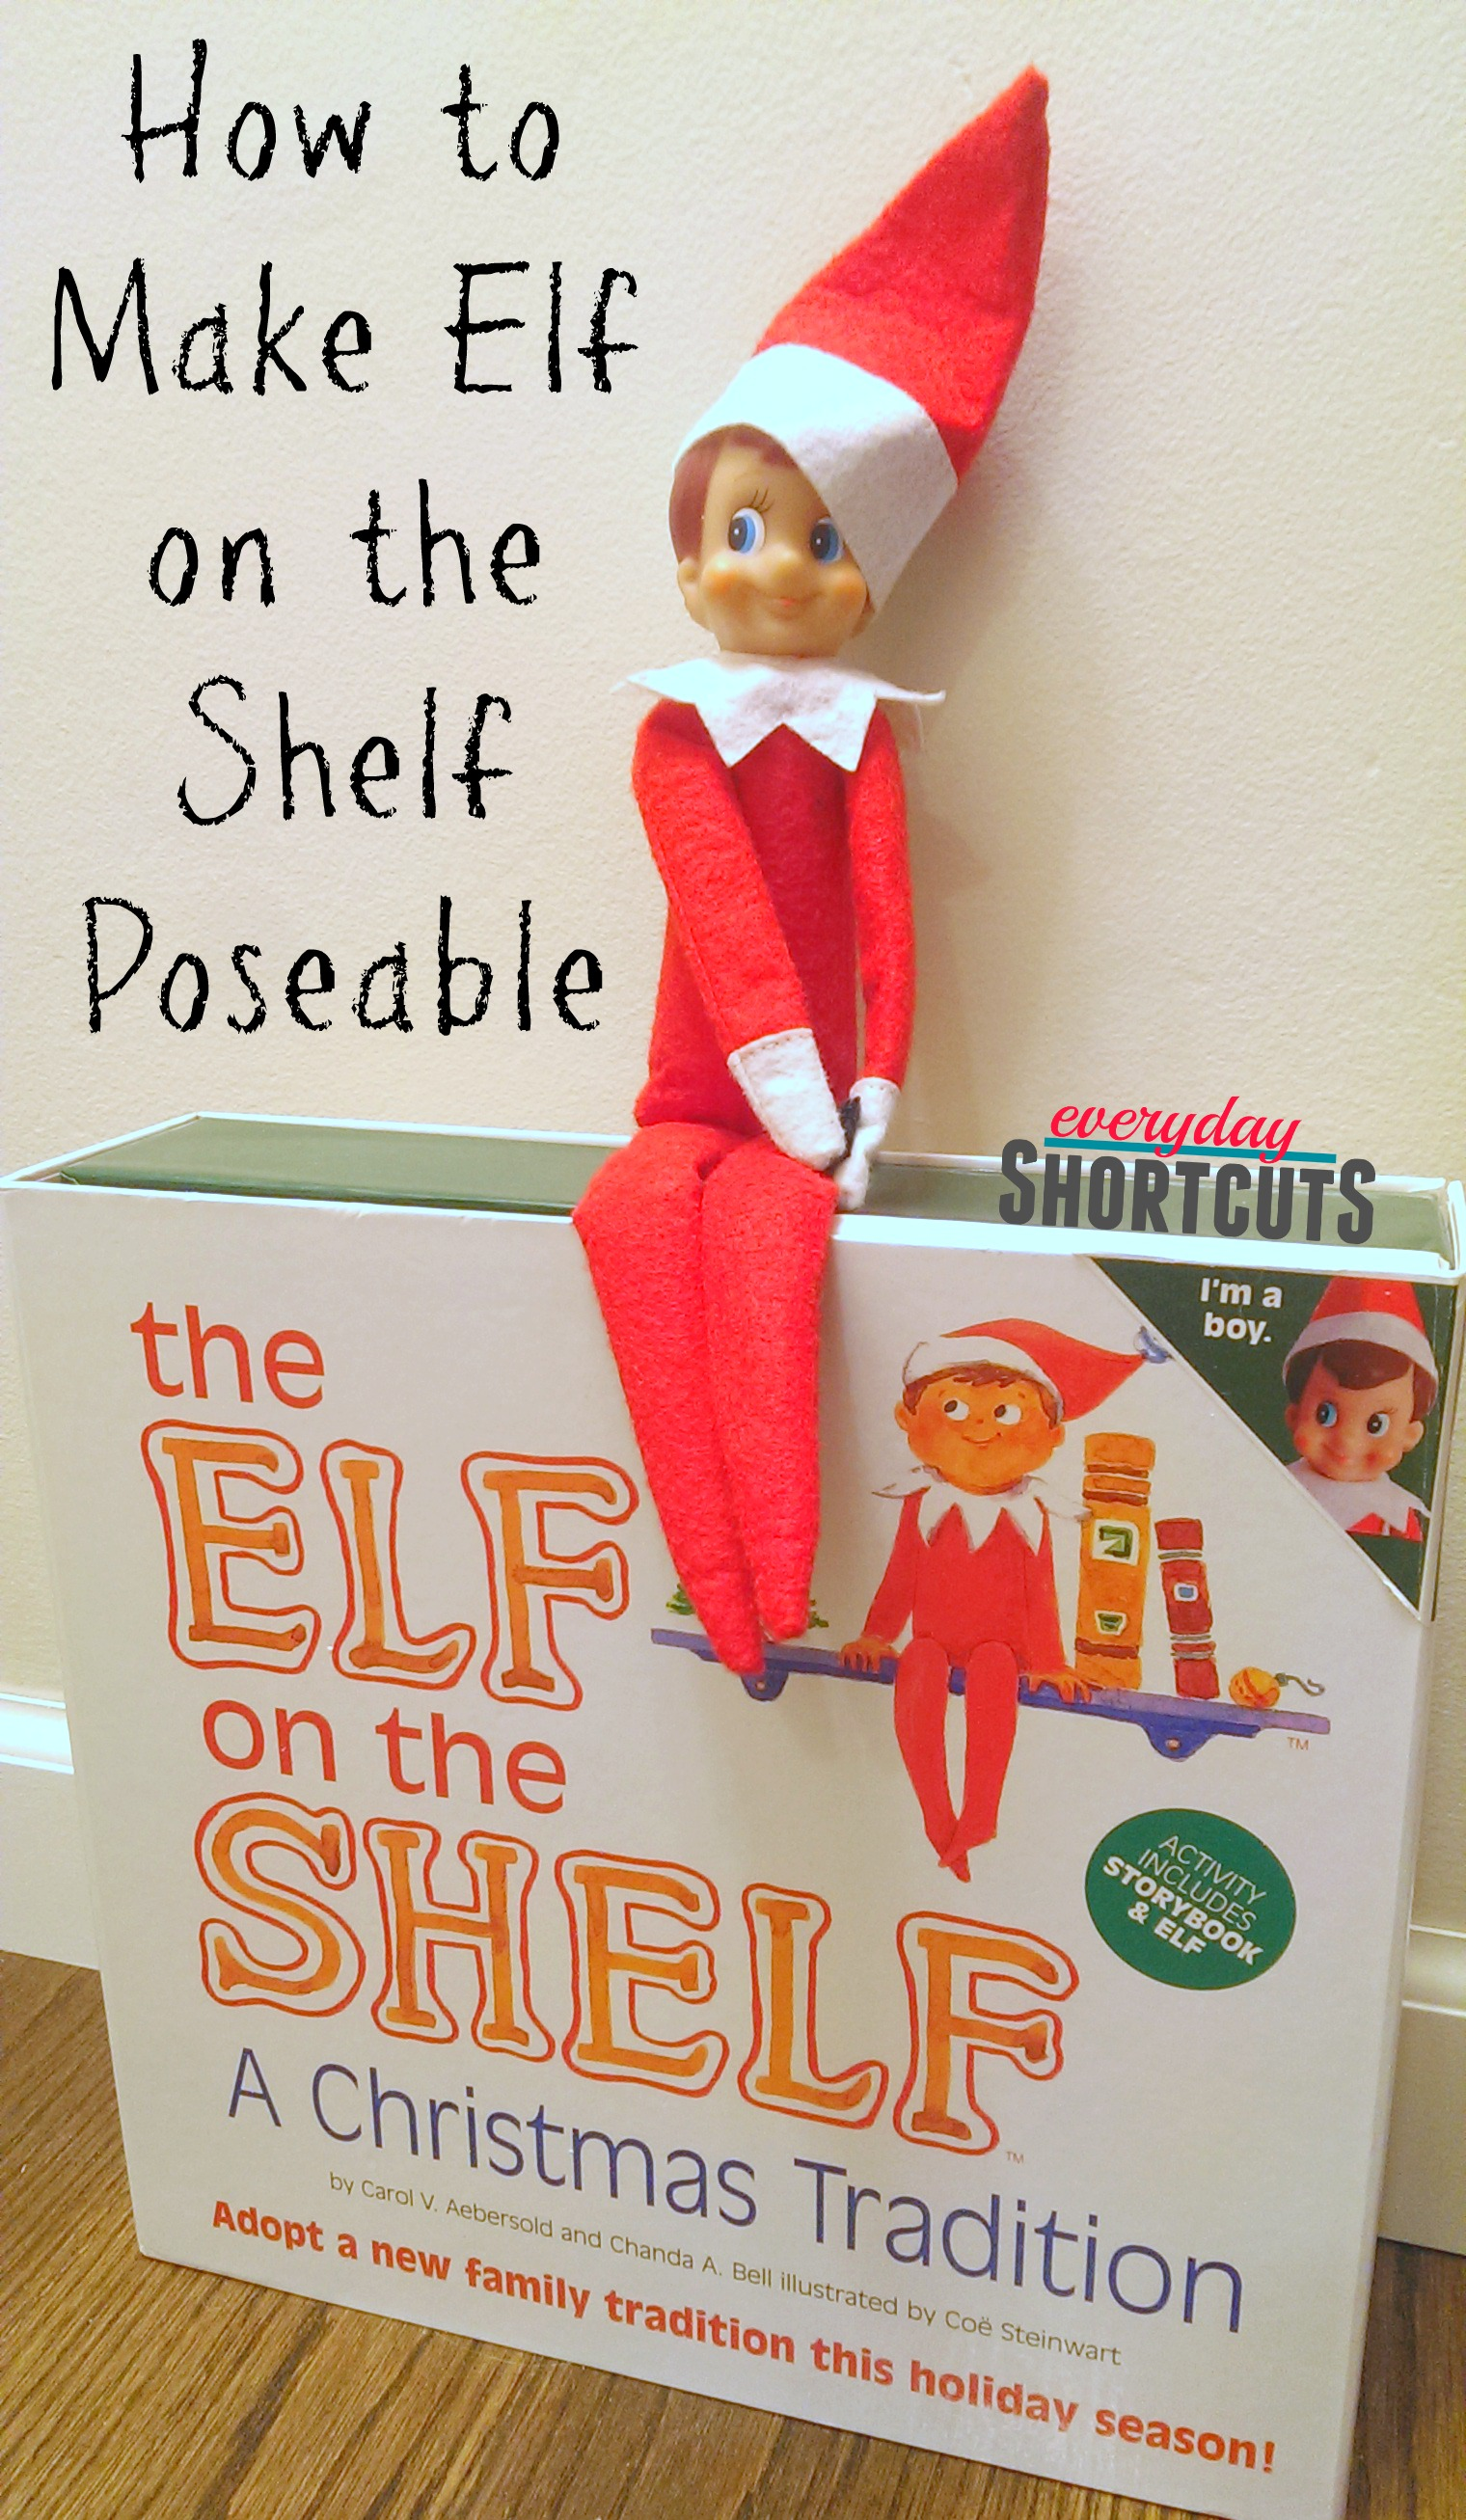 how to make elf on the shelf poseable